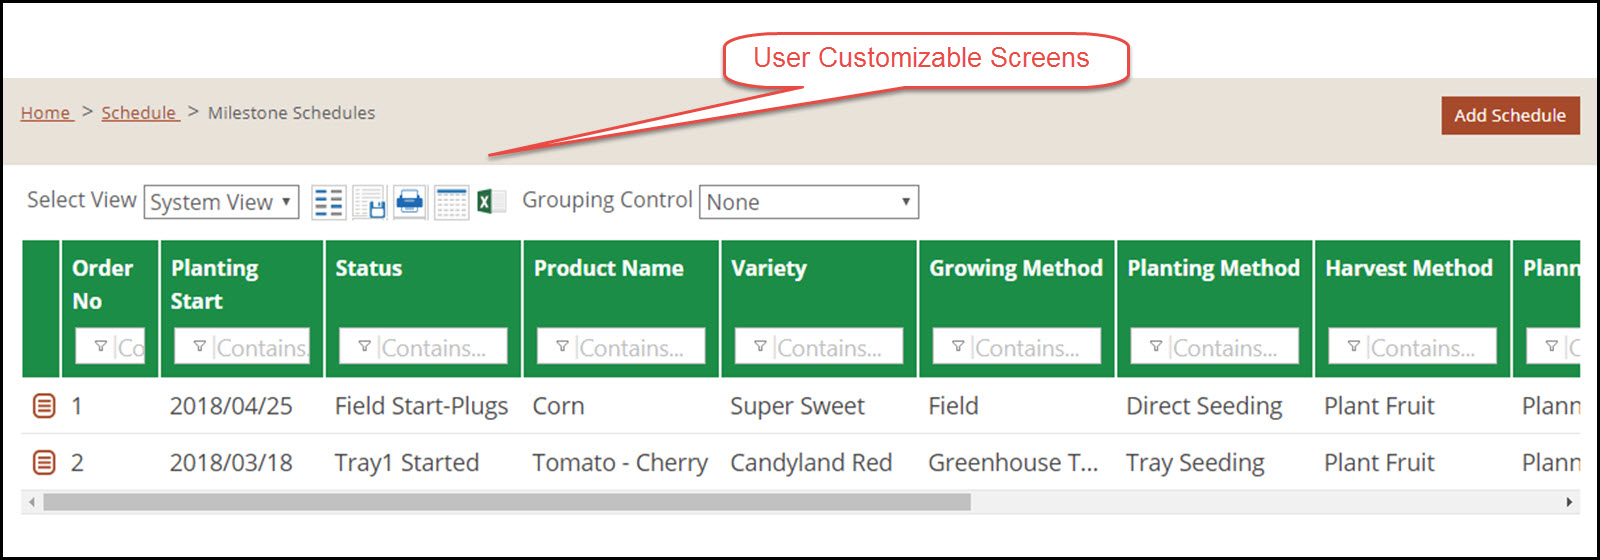 Our Market Farming Software, Farm Production Manager, uses customizable screens with icons and sample text. Quickly sort, filter and group data to better understand your farm's information.